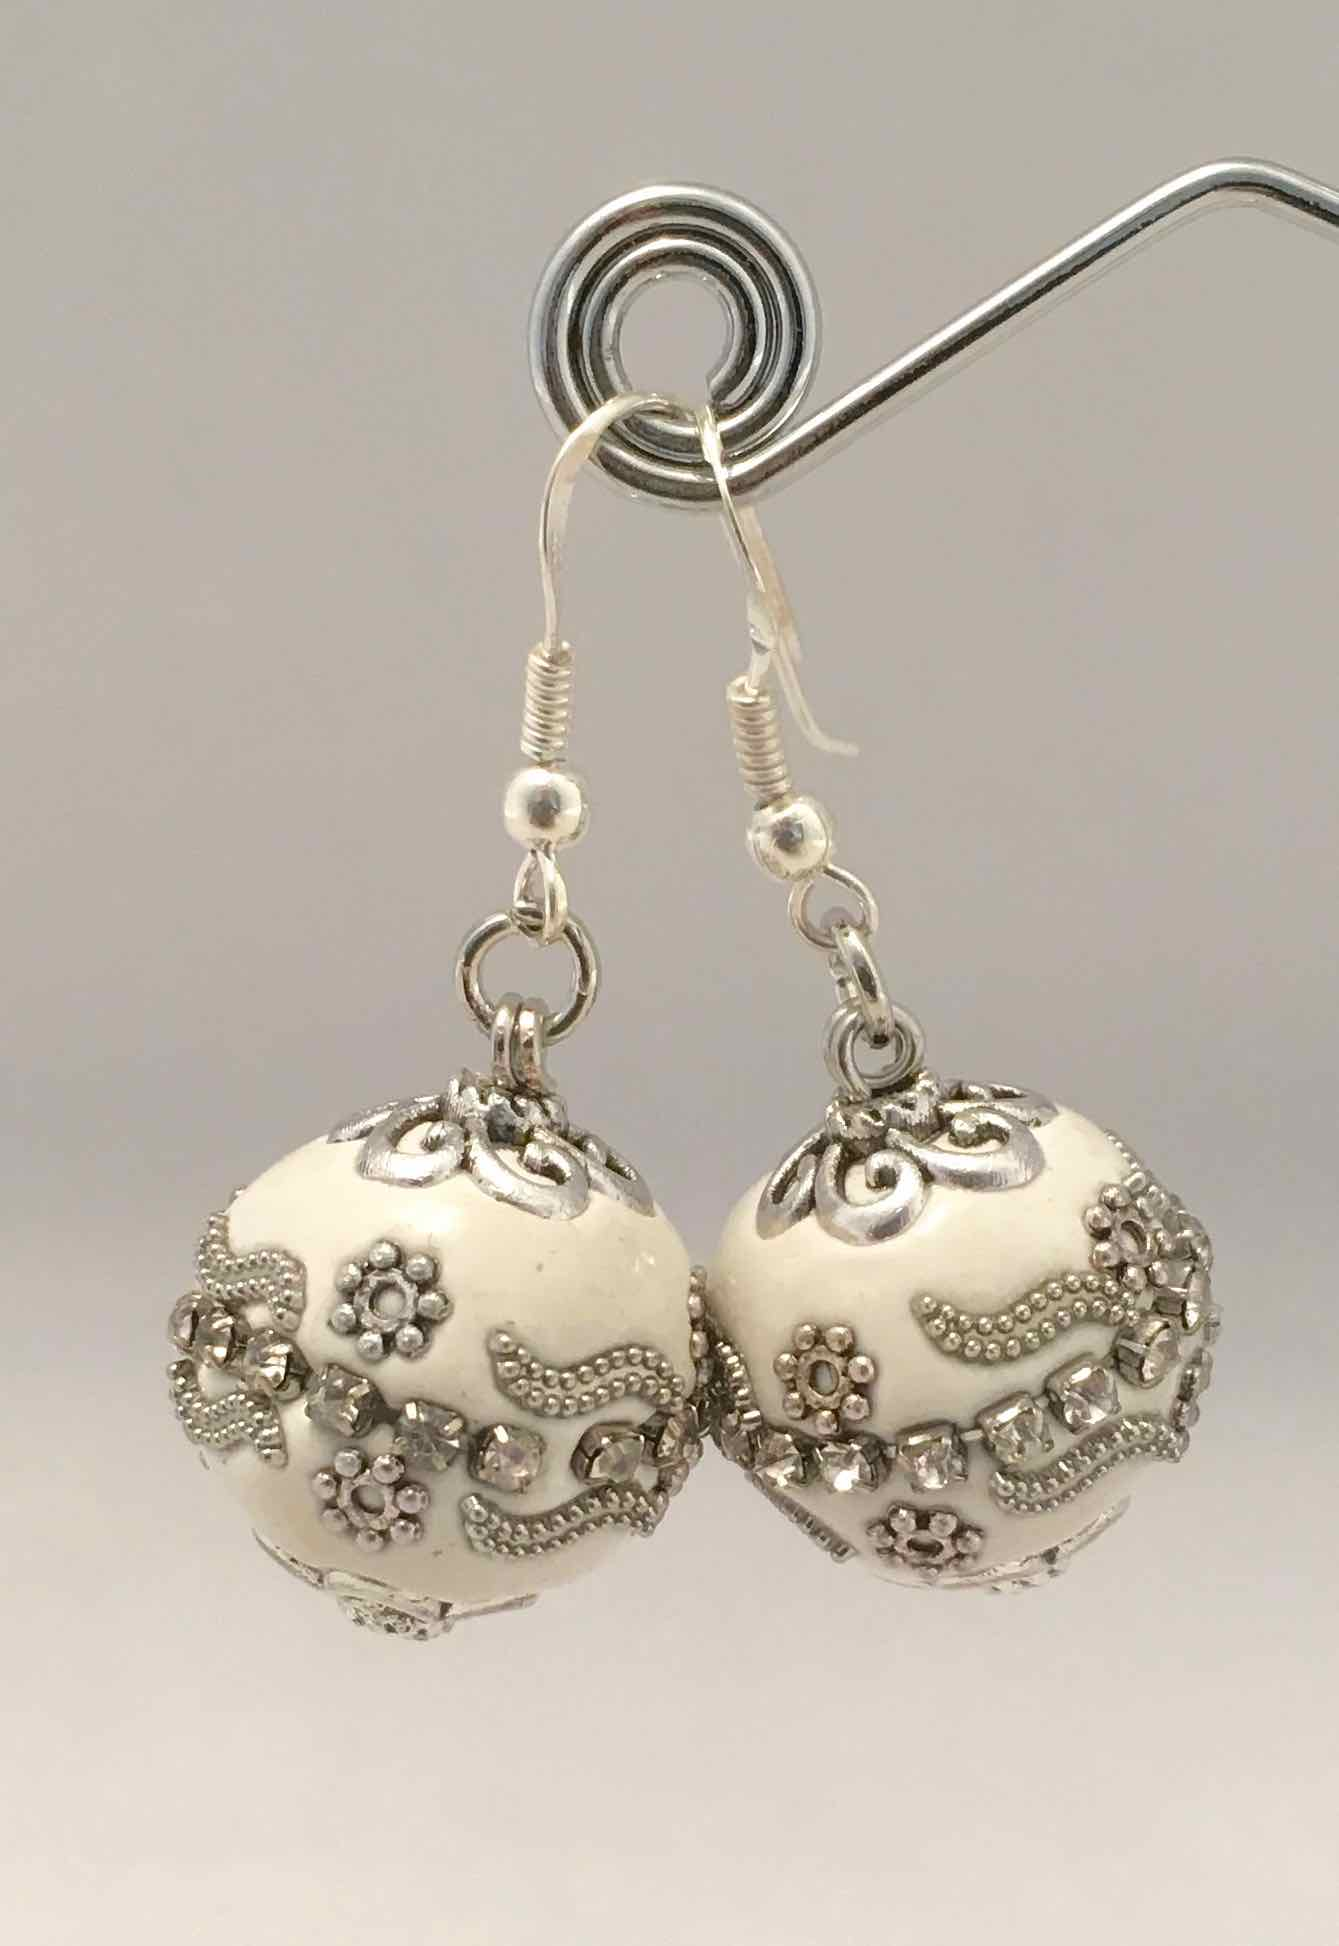 Chagoë, Boucles d'oreilles  Philosophique ,  Collection BLANC  2017